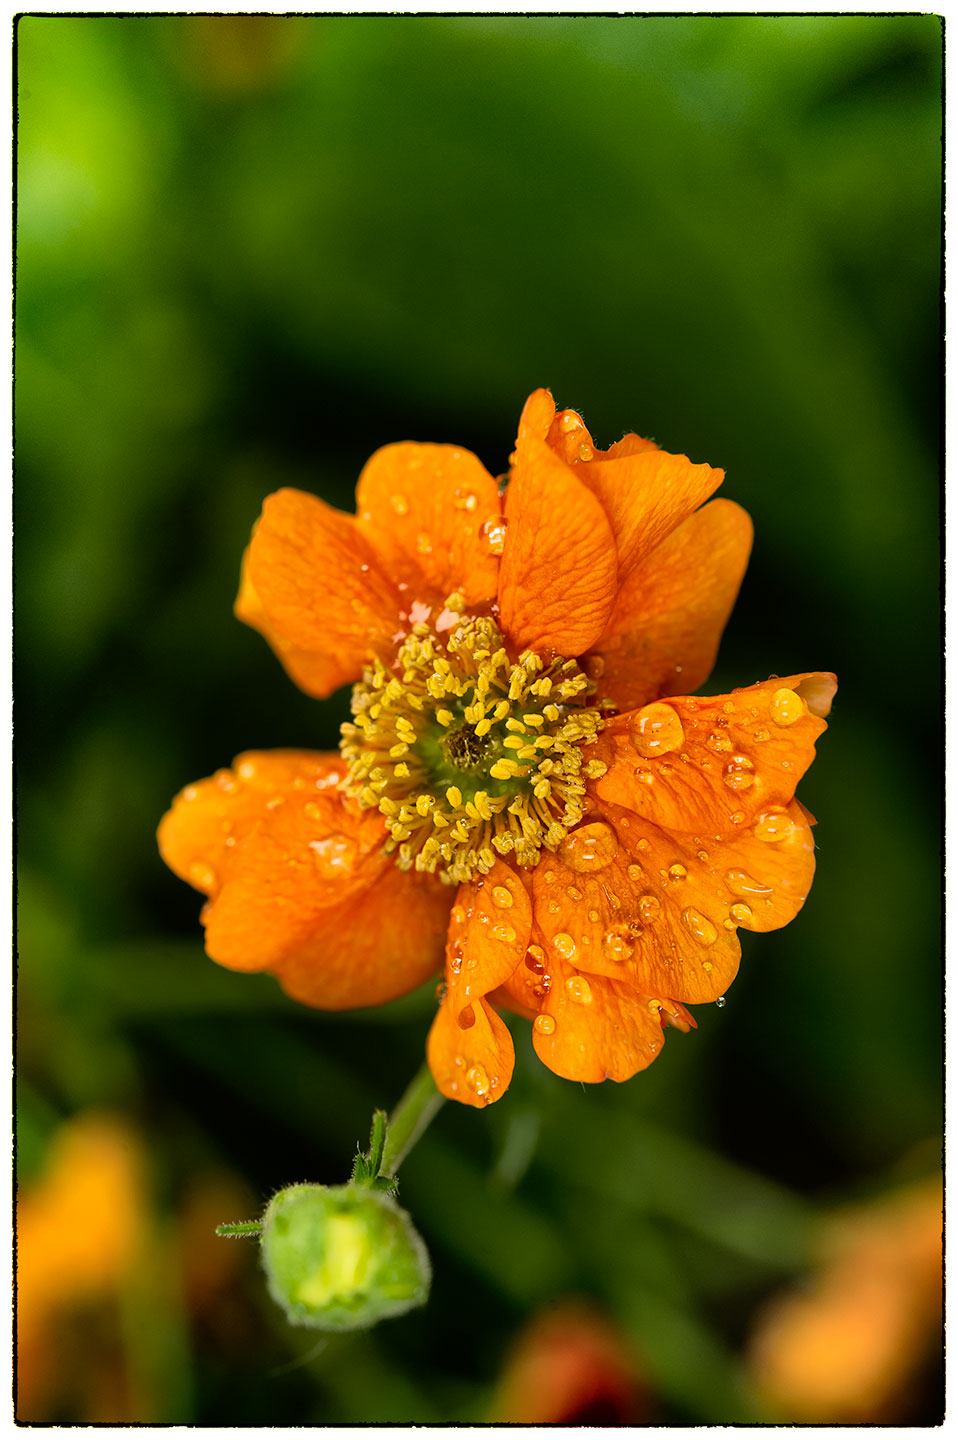 Not too sure what this flower is called or whether it's the best specimen, but I liked the rain drops.